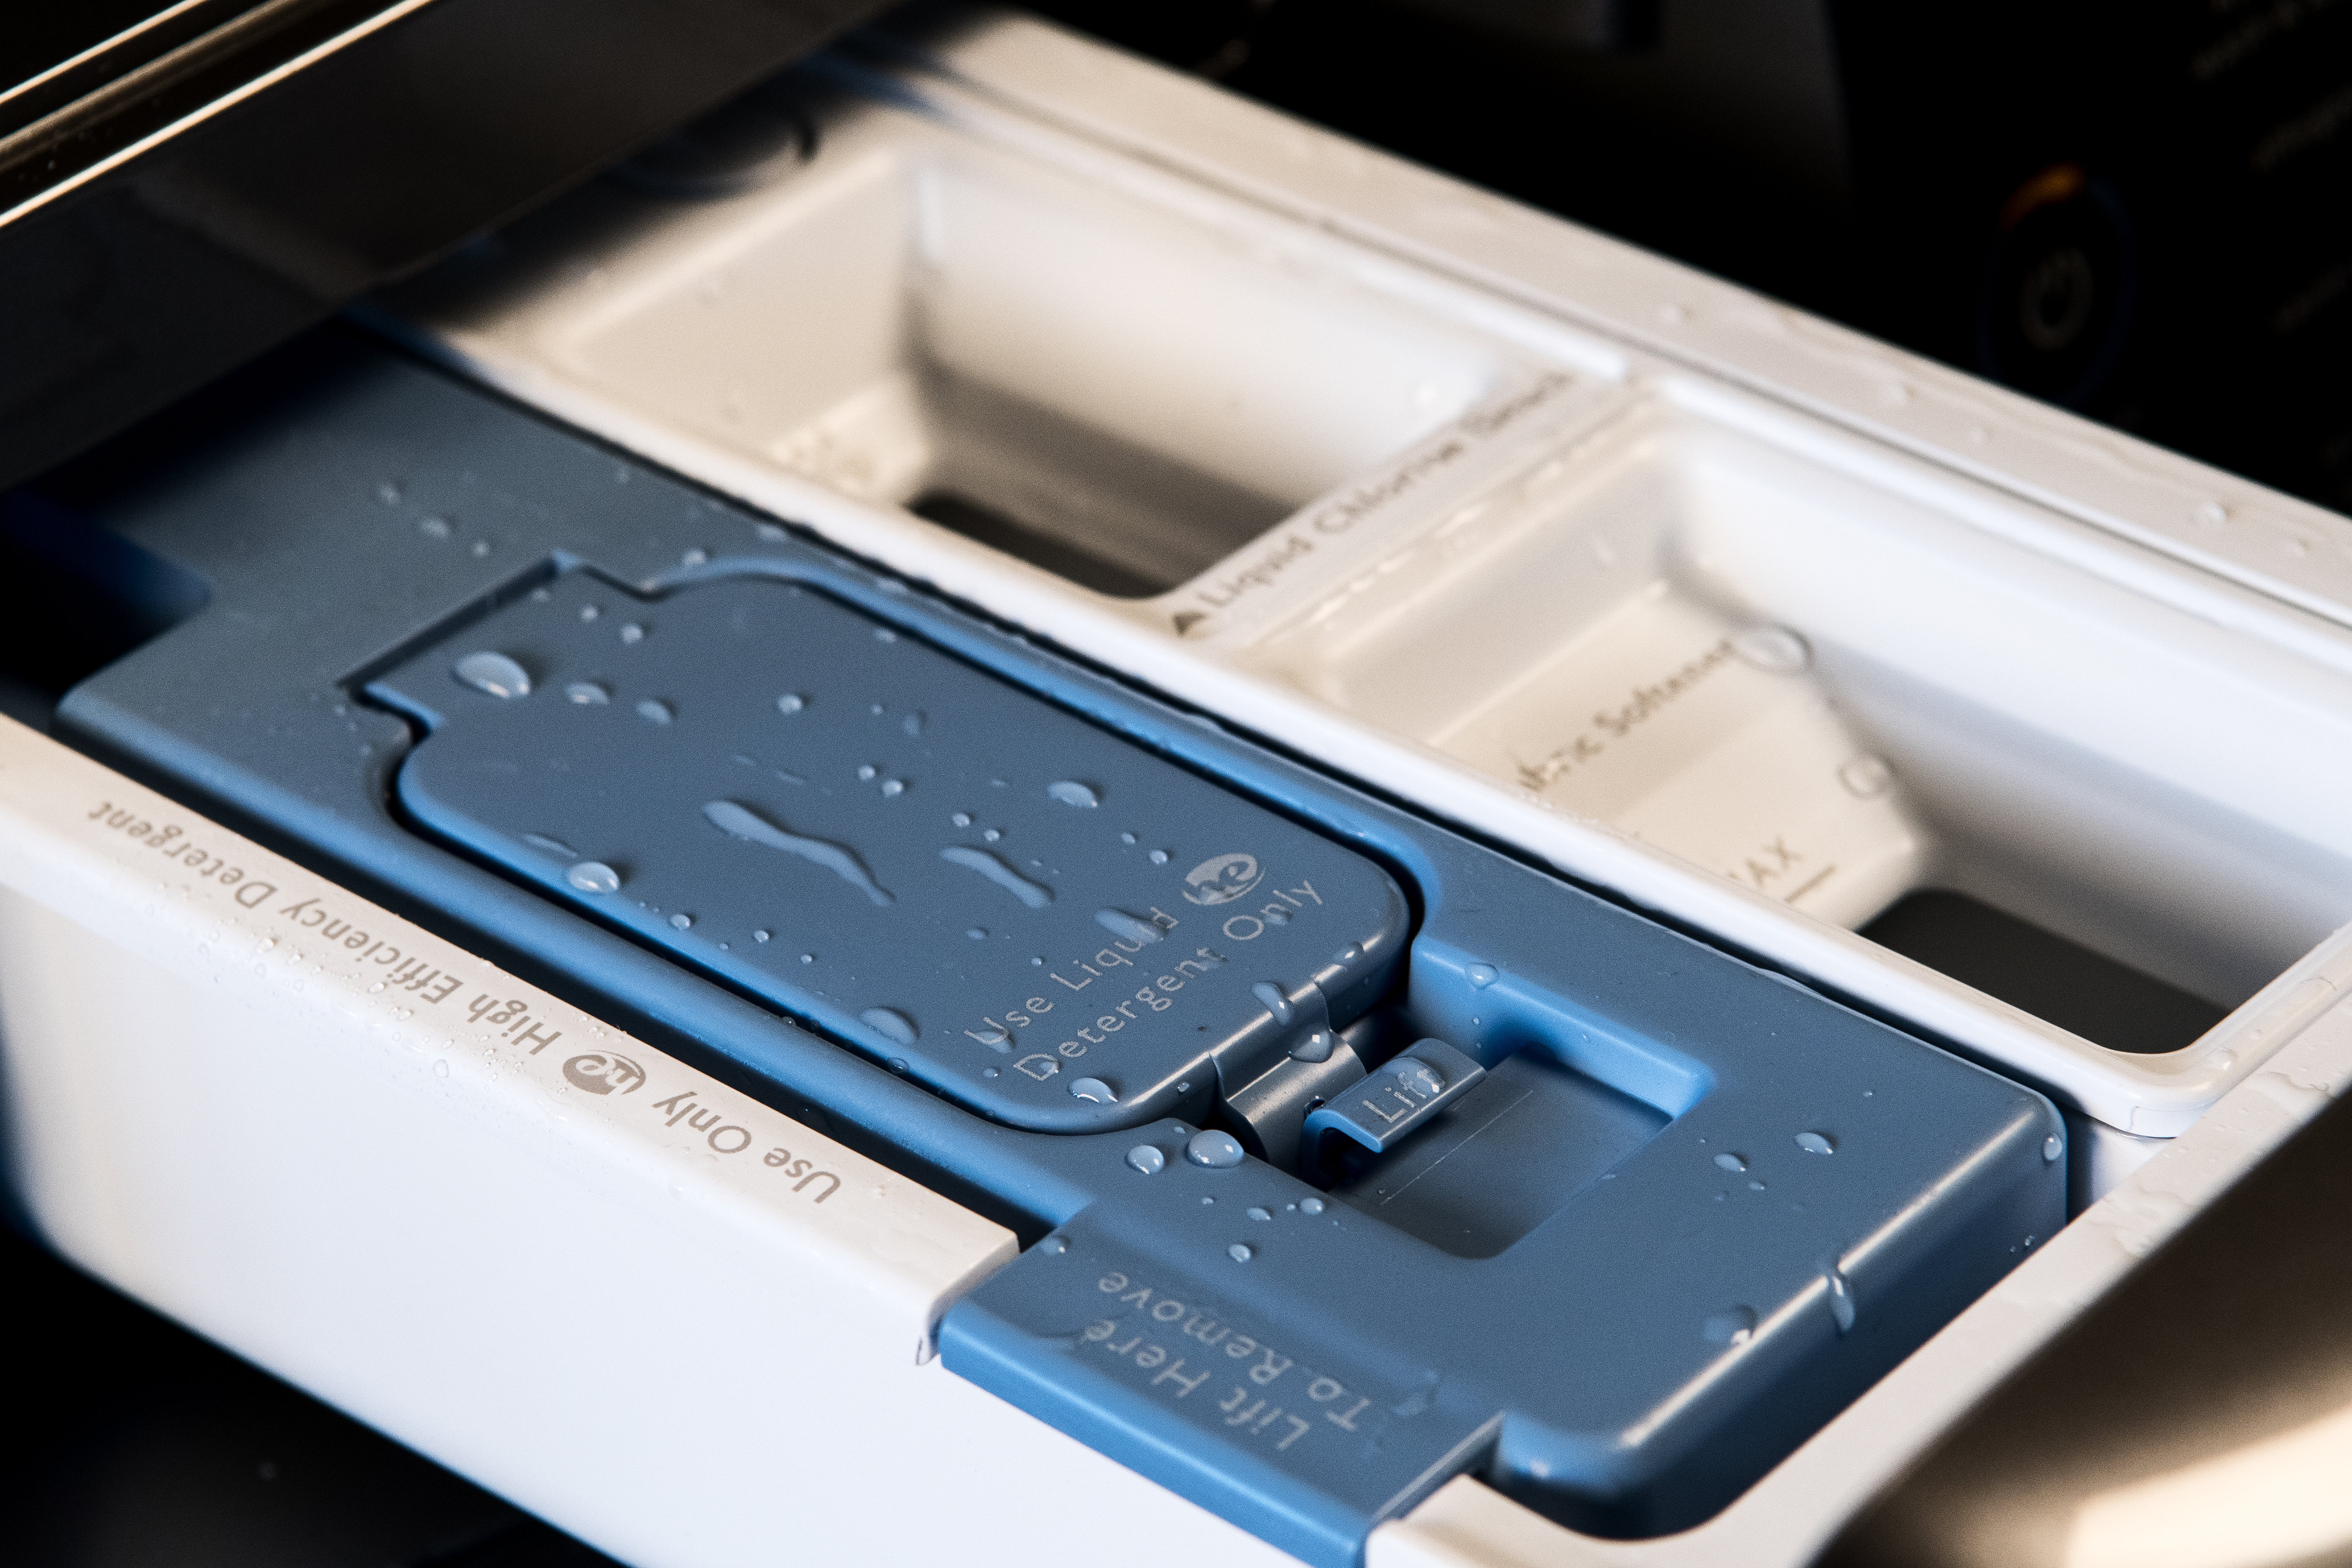 Optimal Dose is a cartridge system that releases the best concentration of detergent for your laundry.